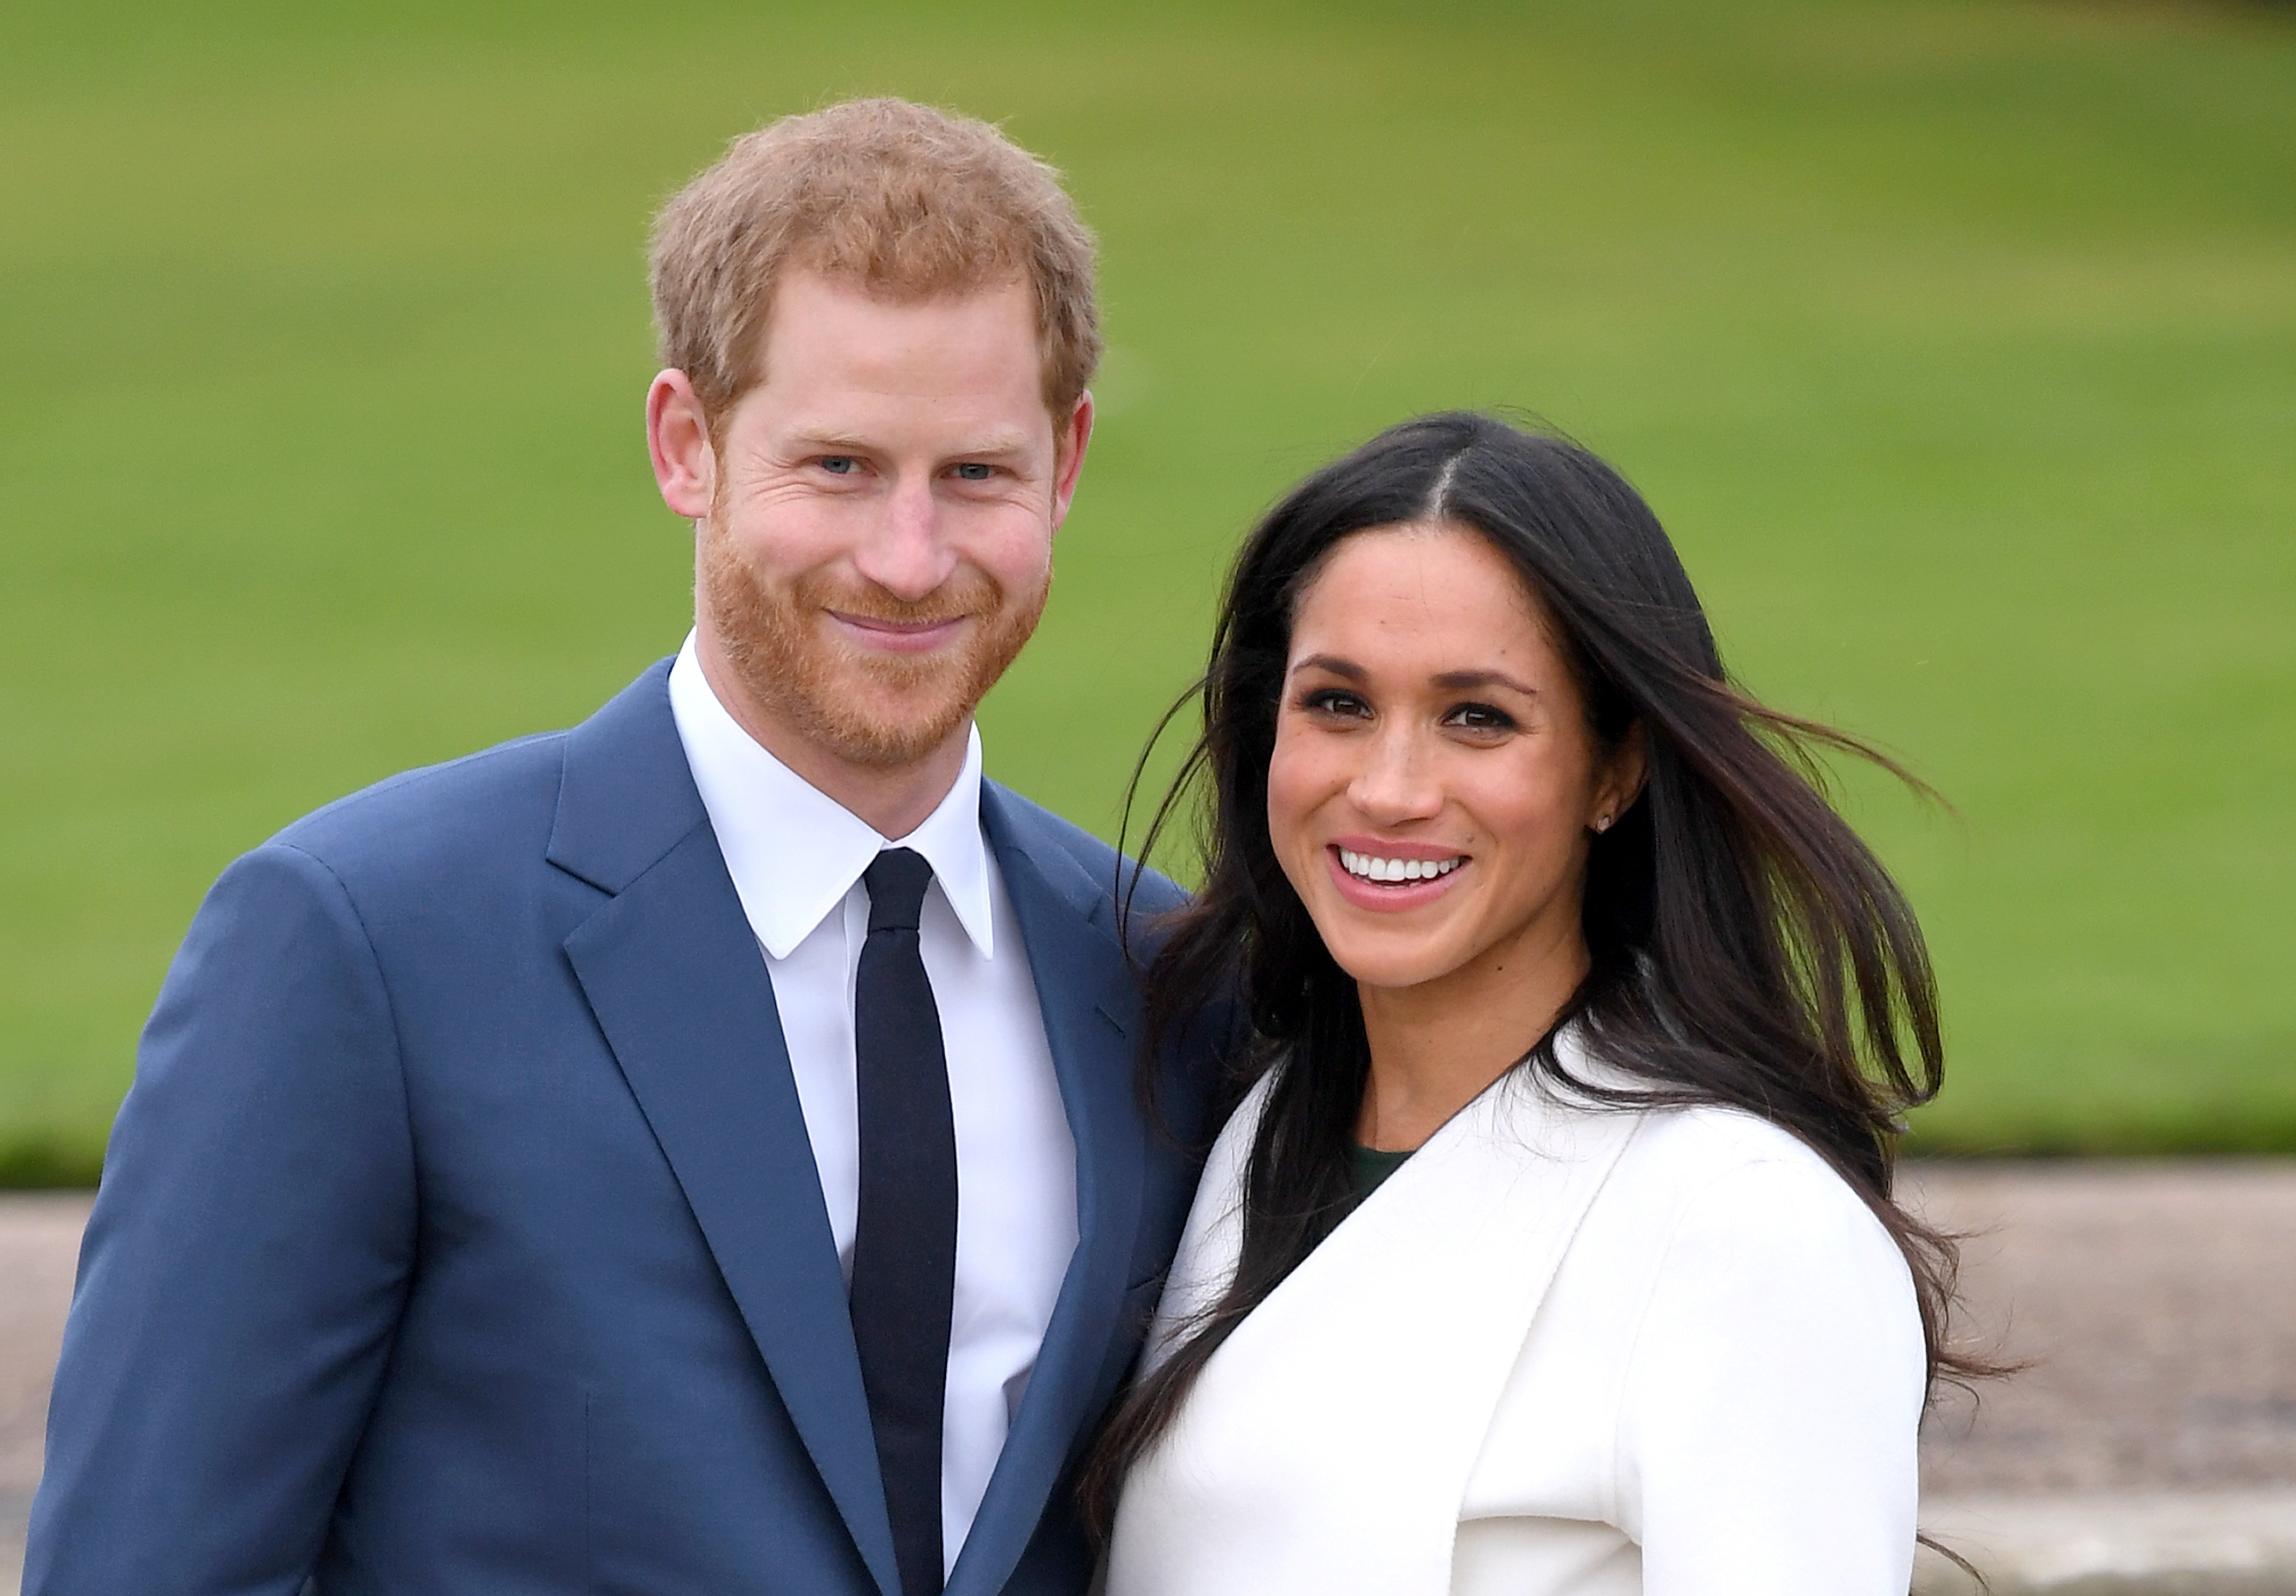 Prince Harry and Meghan Markle pictured the photocall to announce their engagement in 2017, London, England. | Photo: Getty Images